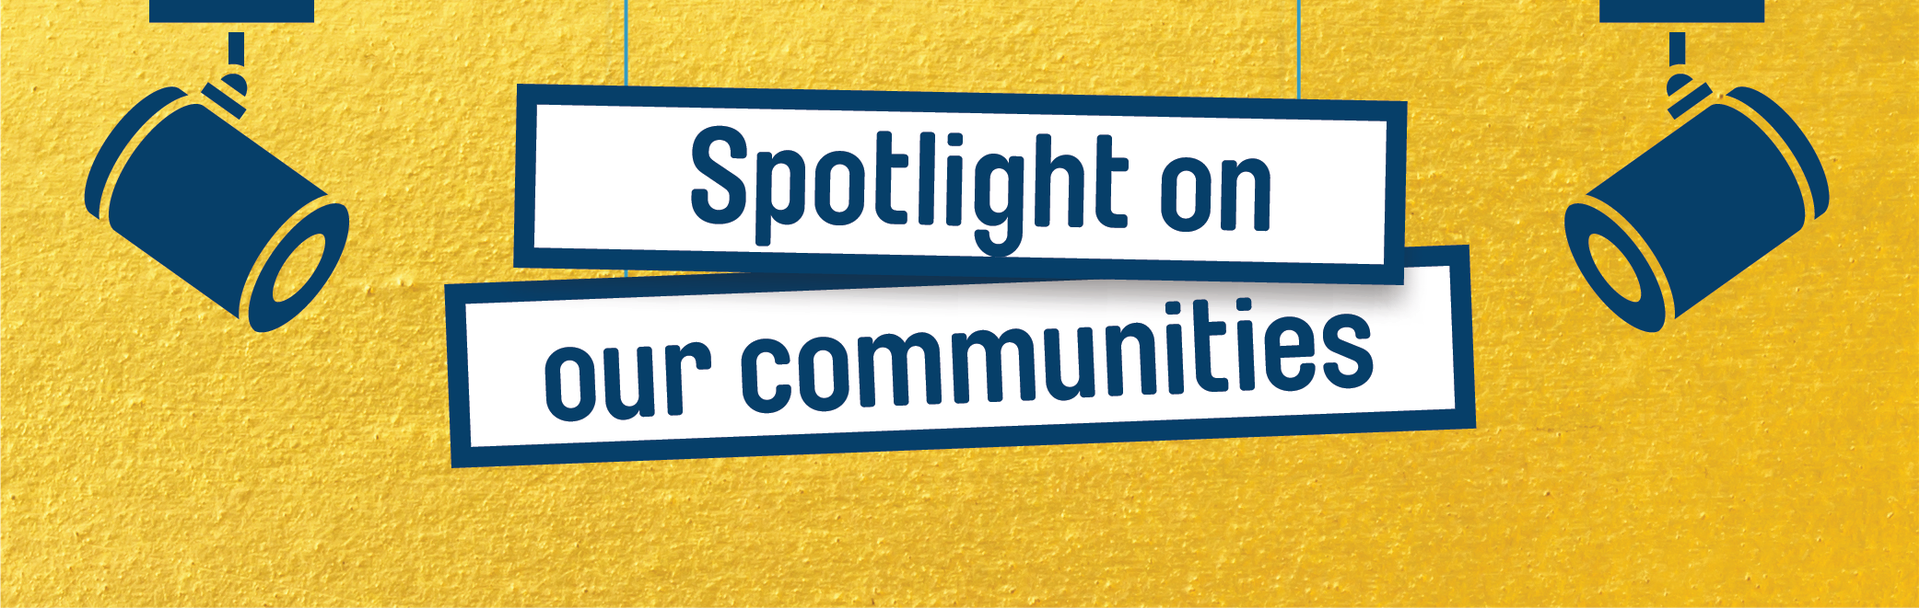 Spotlight on our communities